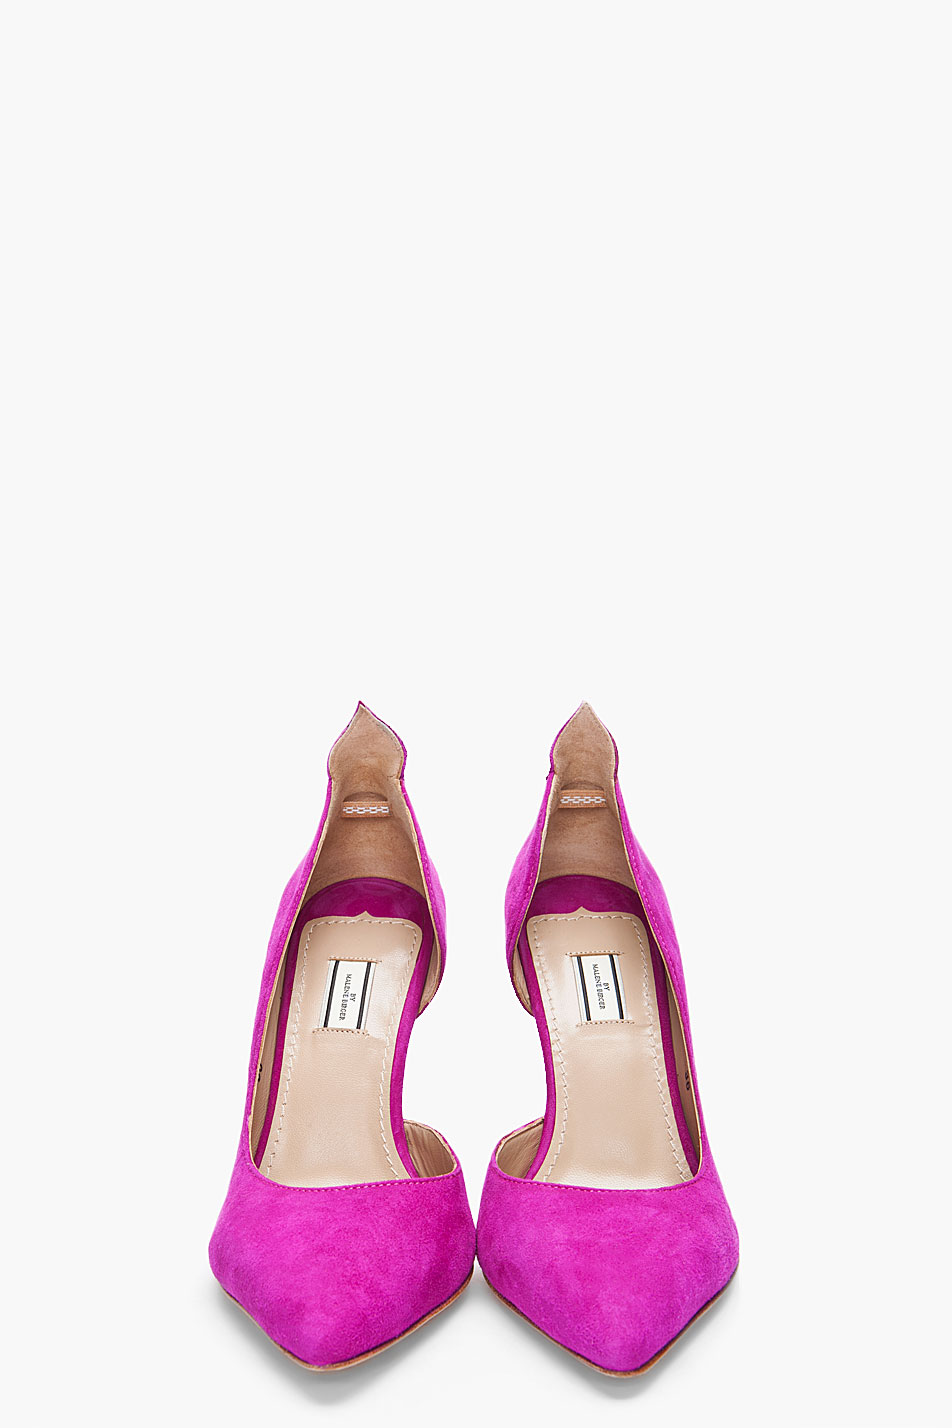 b4a23d91512 Lyst - By Malene Birger Raspberry Suede Sinousa Heels in Purple